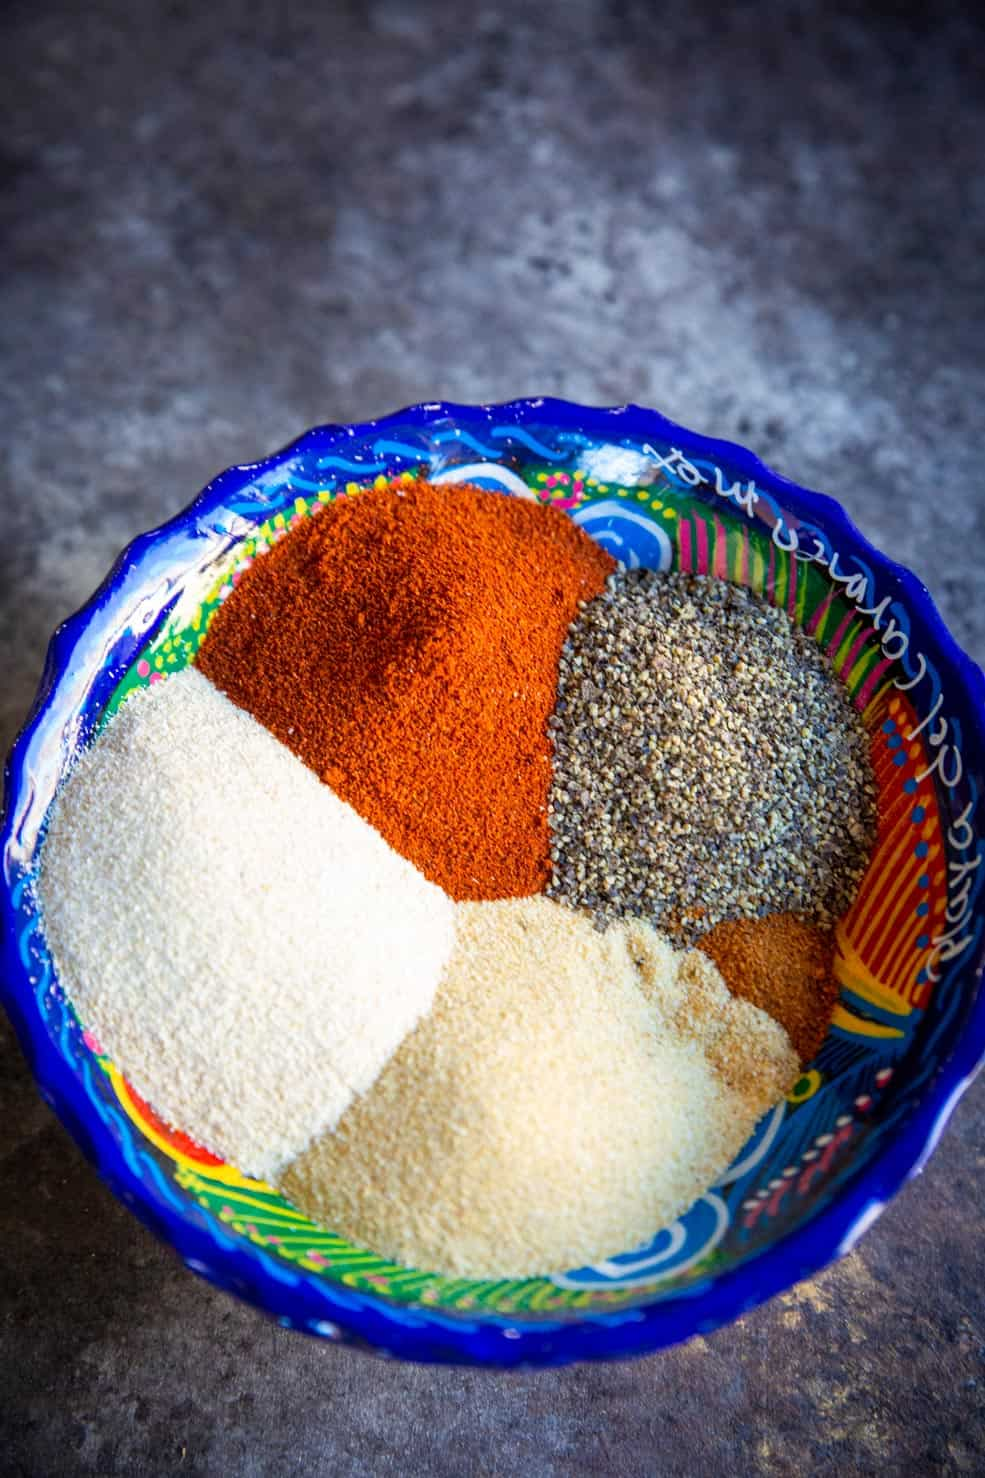 A close up of chili powder and various other spices which commonly go in carne asada seasoning.